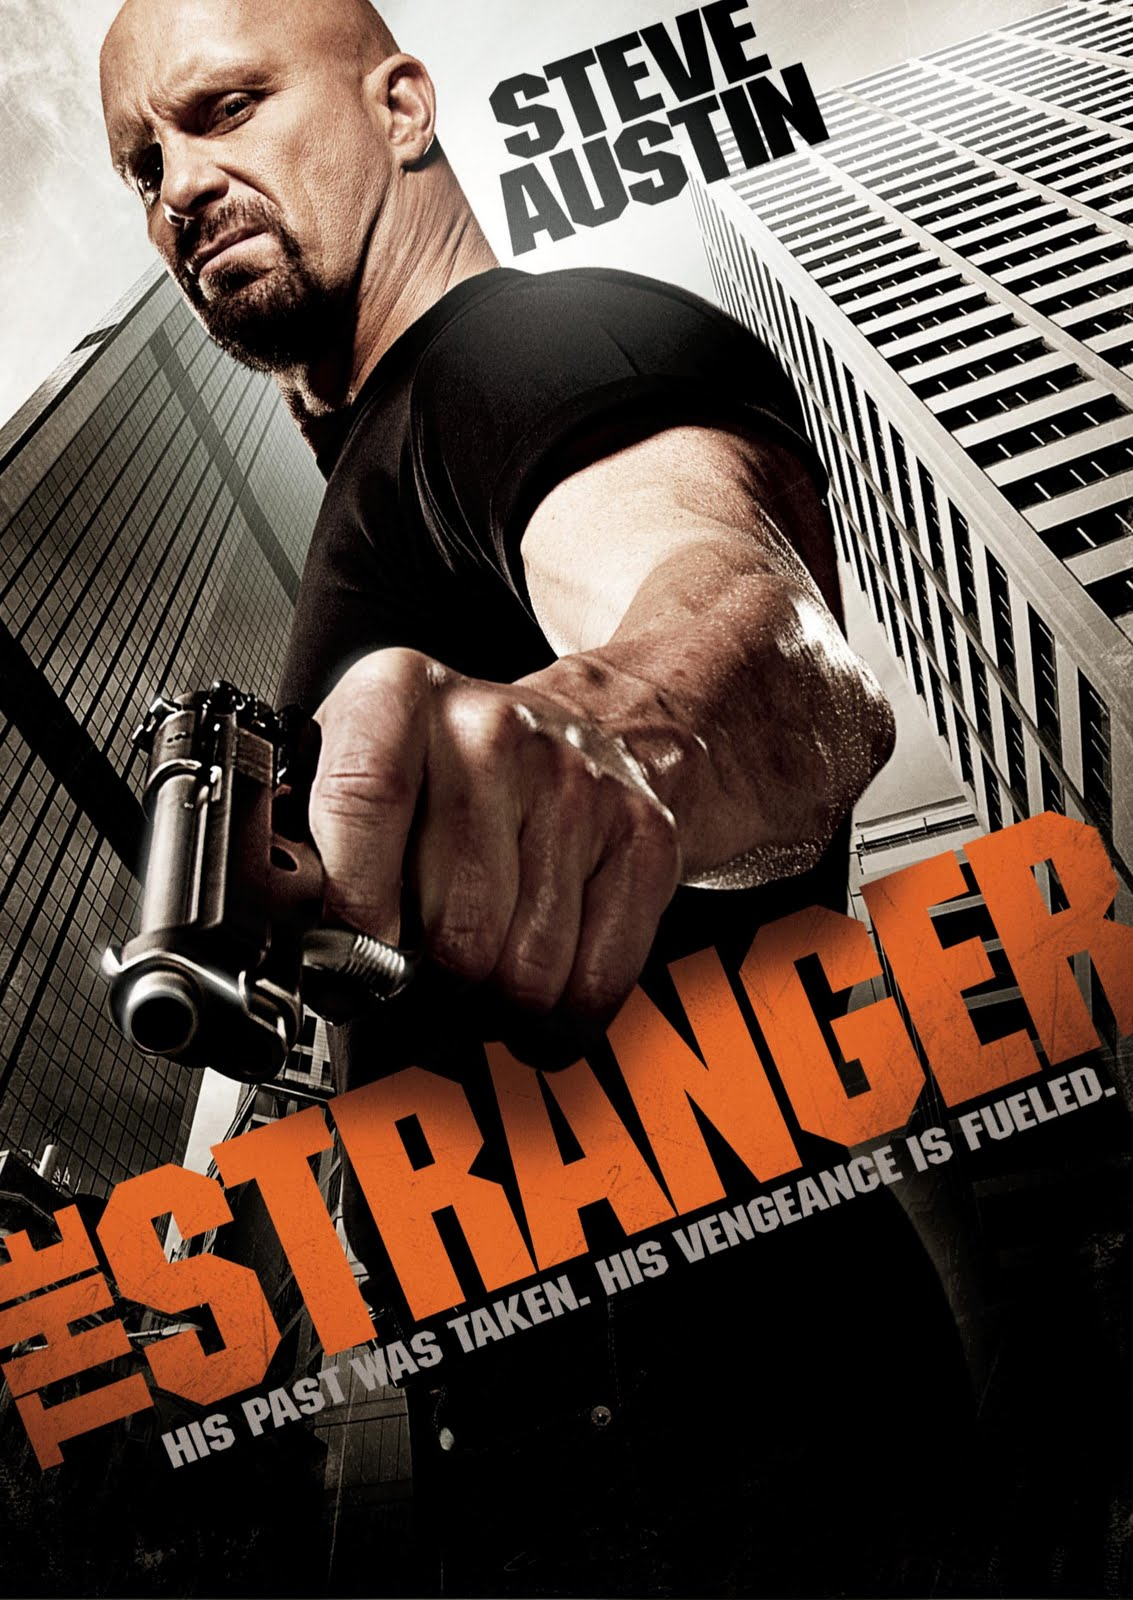 The Stranger movie